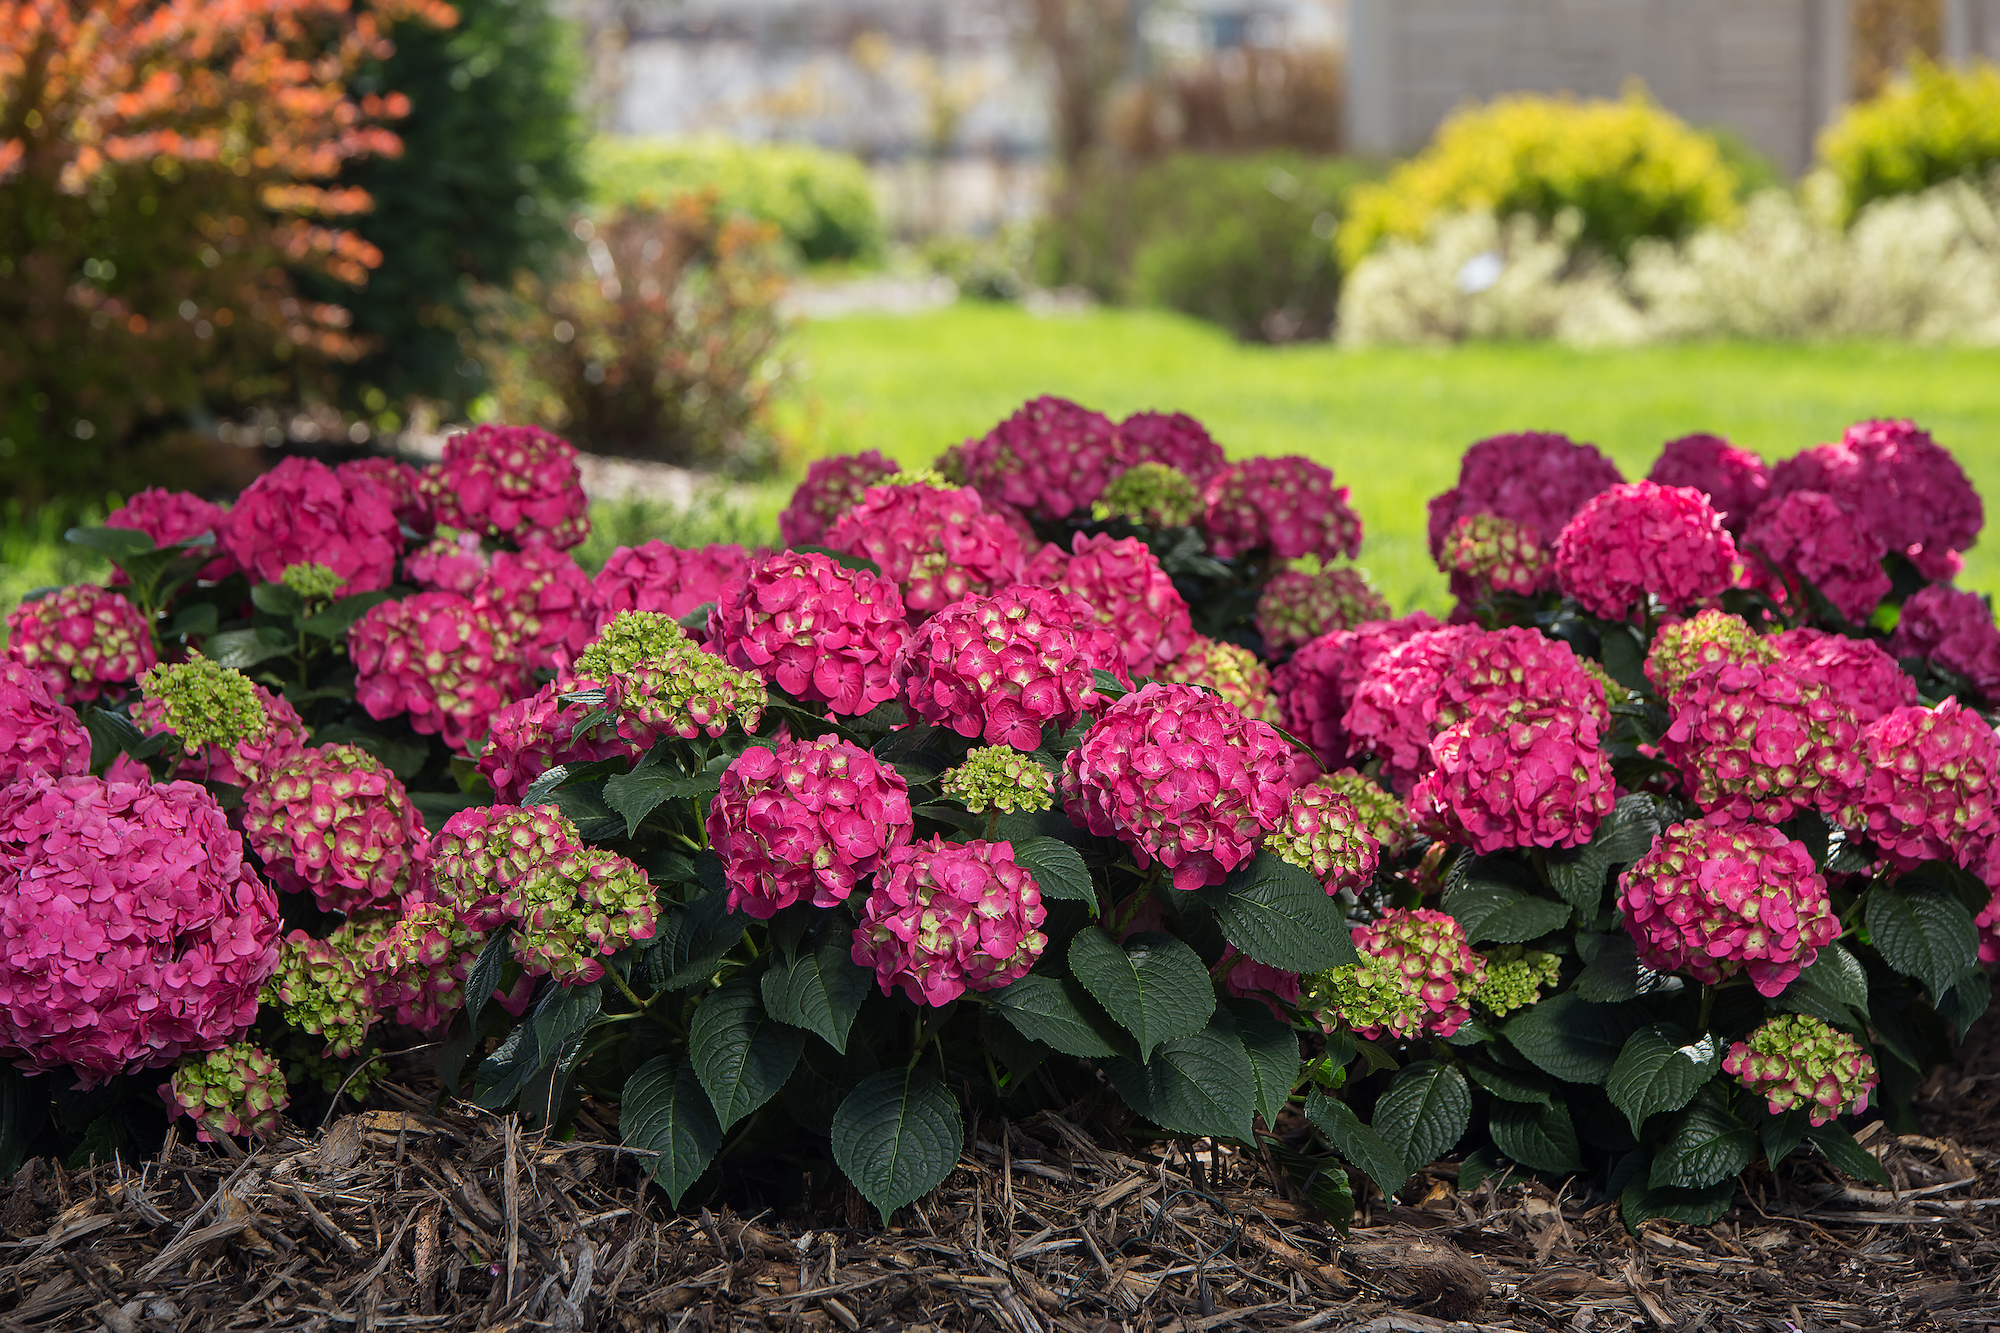 Endless Summer Summer Crush Hydrangea with pink blooms